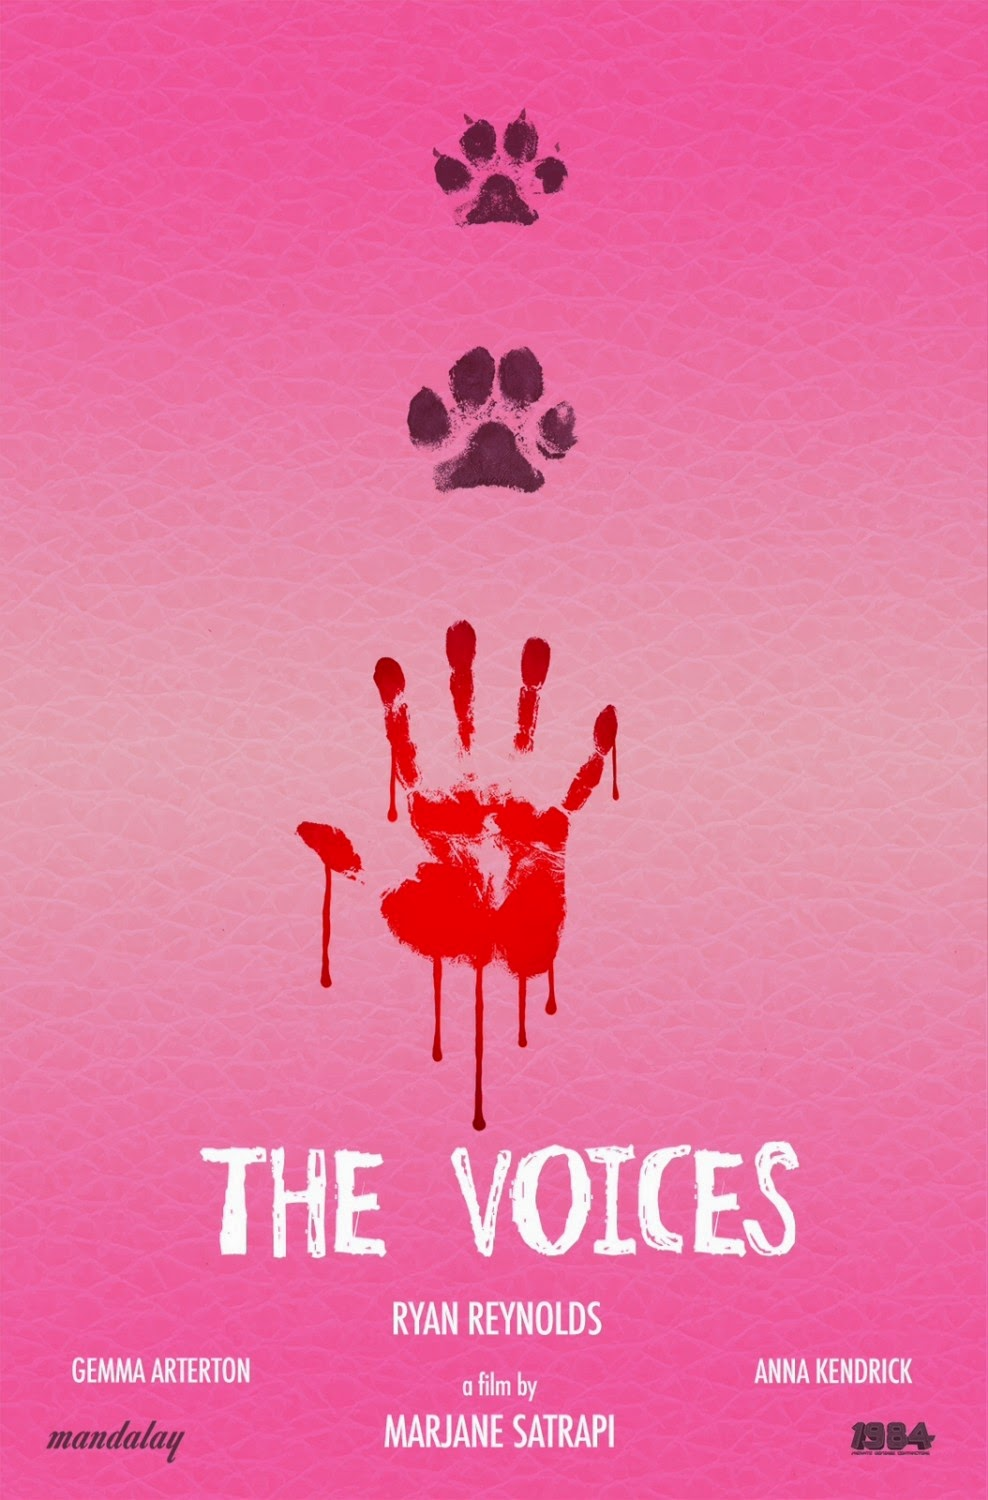 the voices ryan reynolds